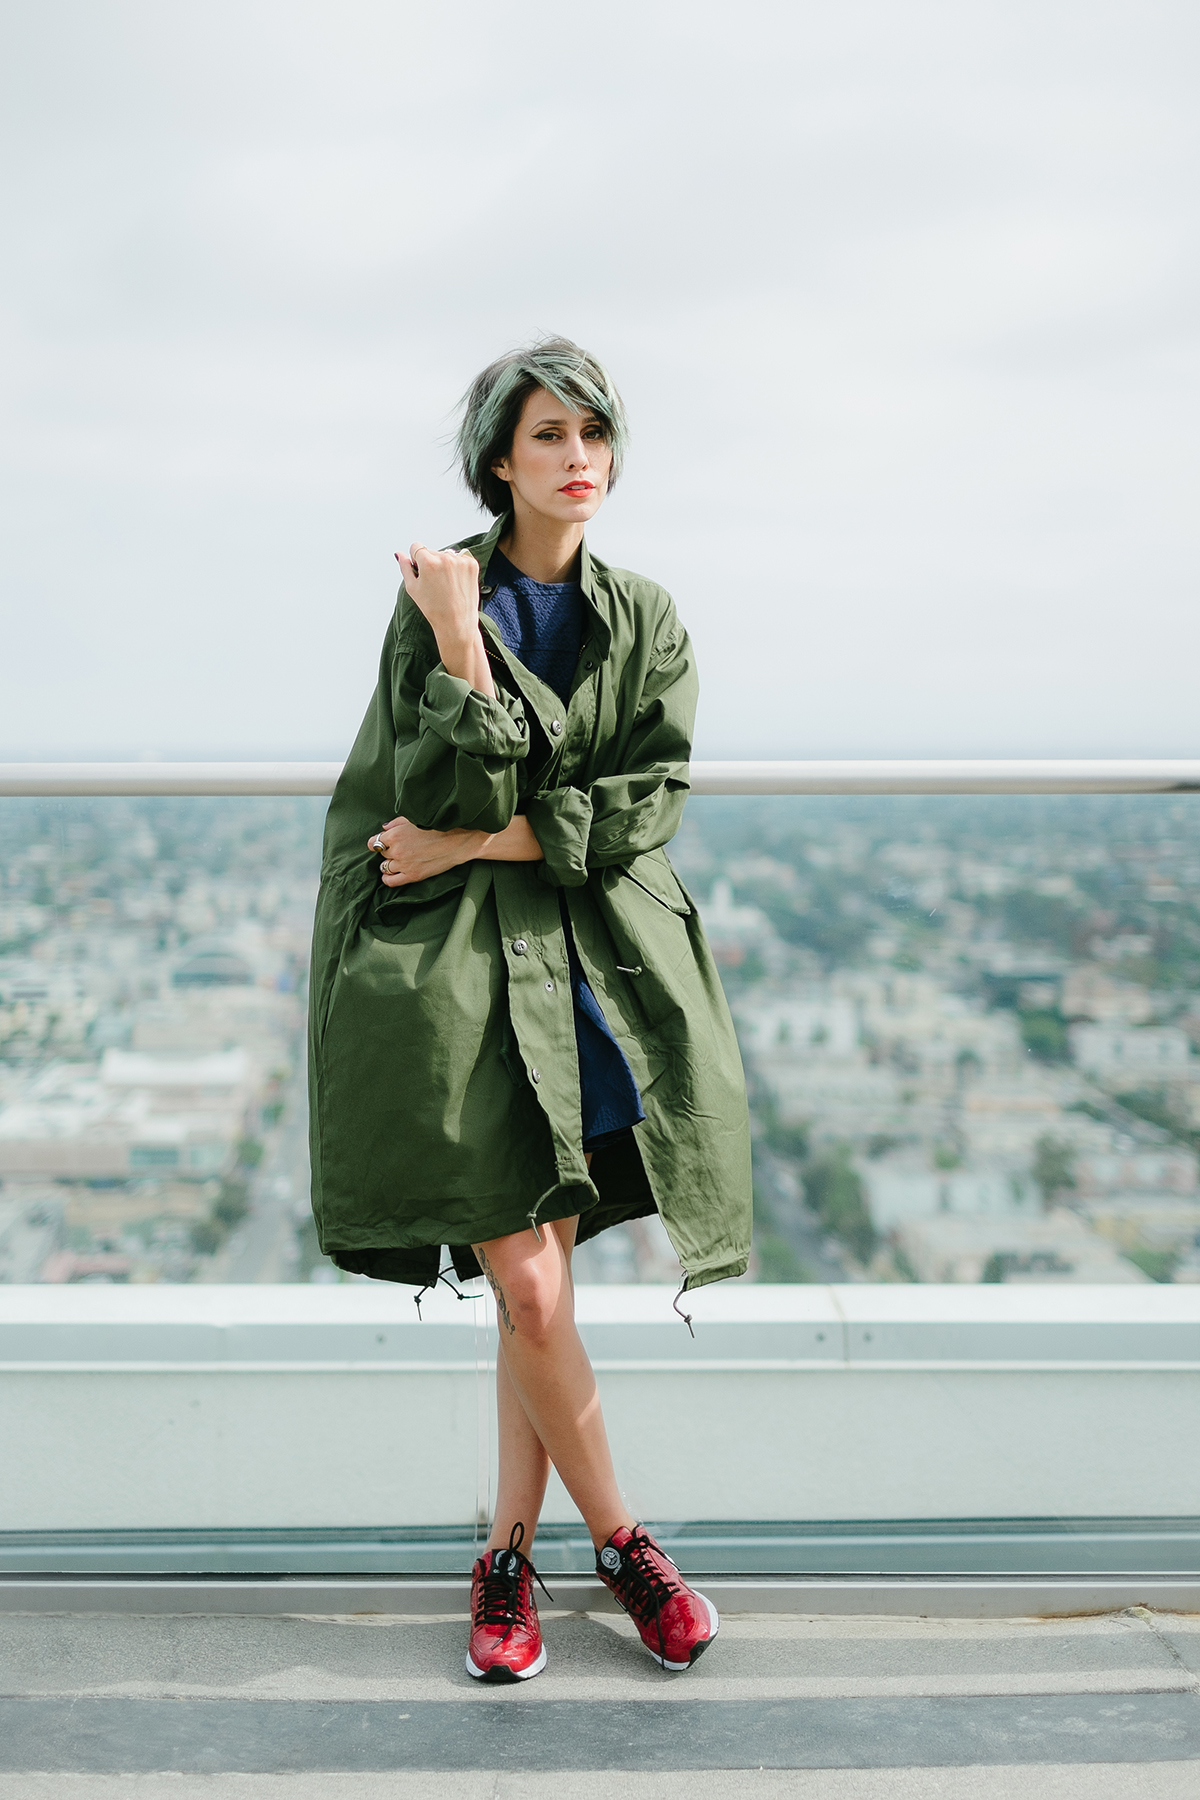 Gourmet Women's 2014 Fall/Winter Lookbook